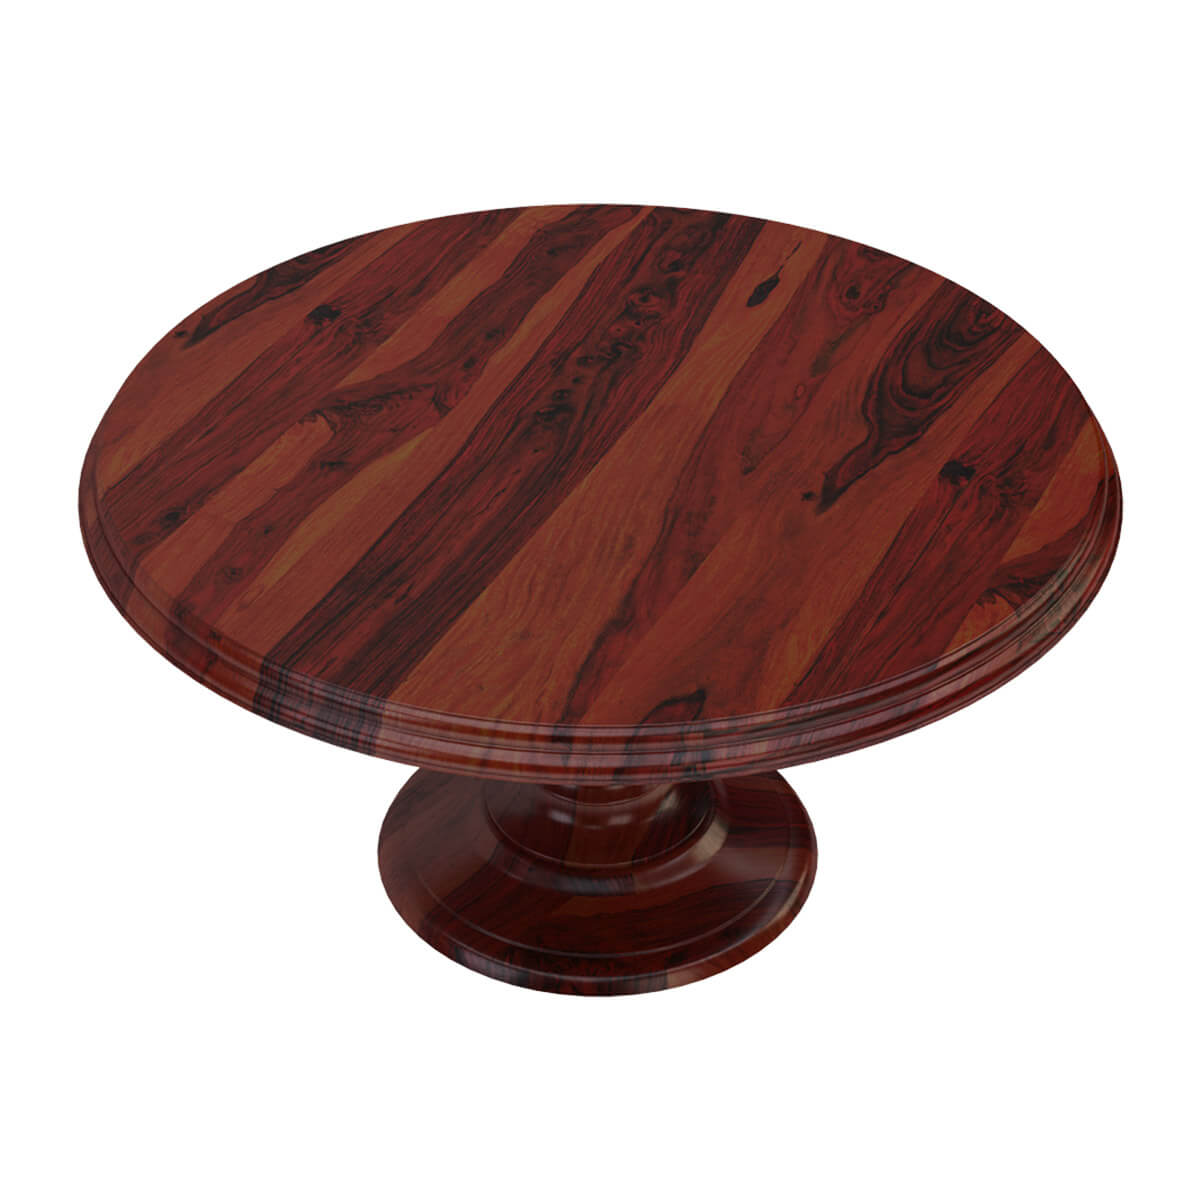 Solid wood rustic 60 round dining table with pedestal base for Dining room table pedestal bases